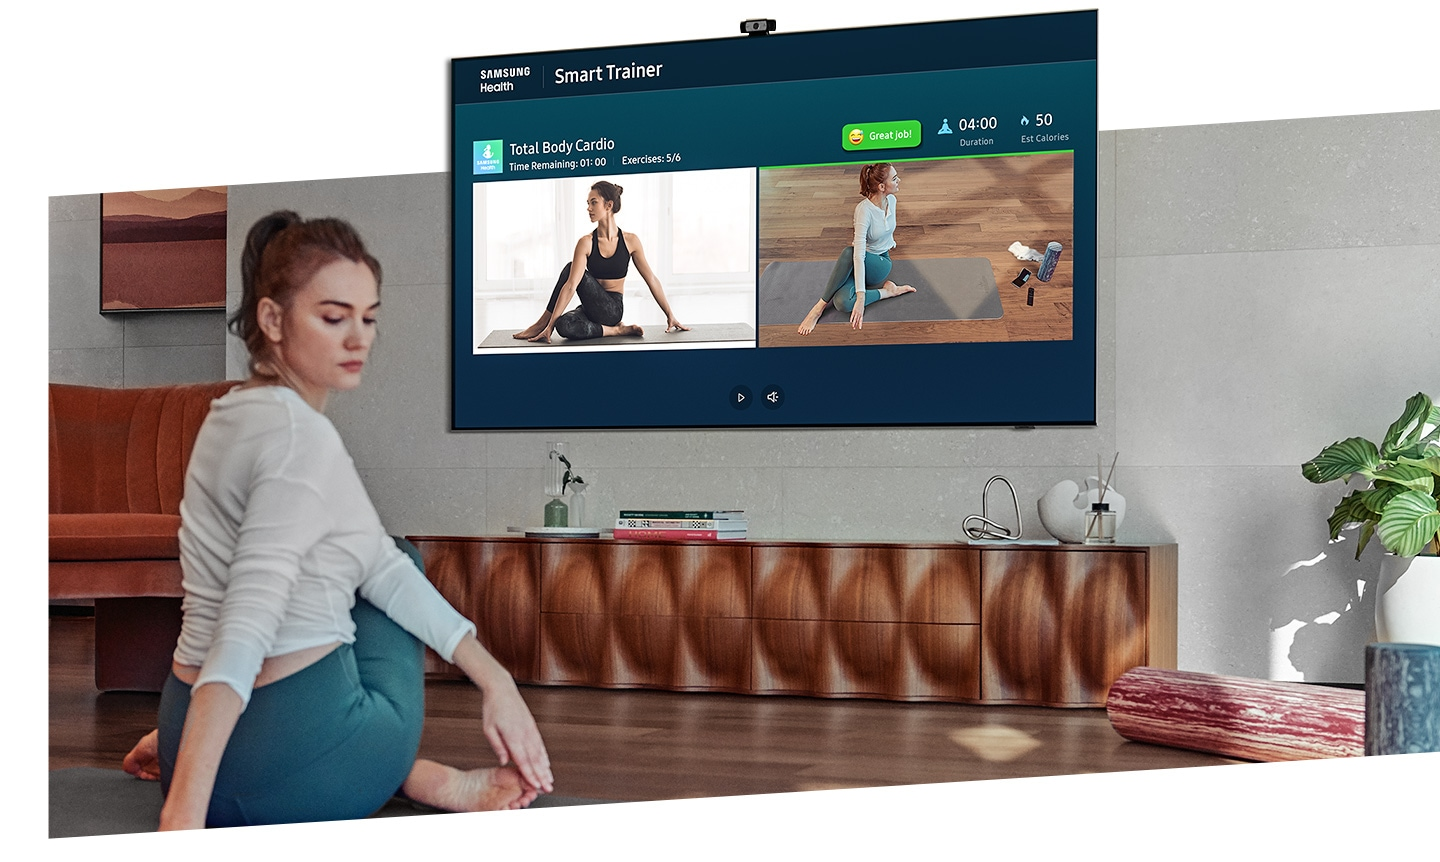 A woman exercises more accurately with QLED TV's camera-powered coaching feature which lets her watch herself and the training coach at the same time.